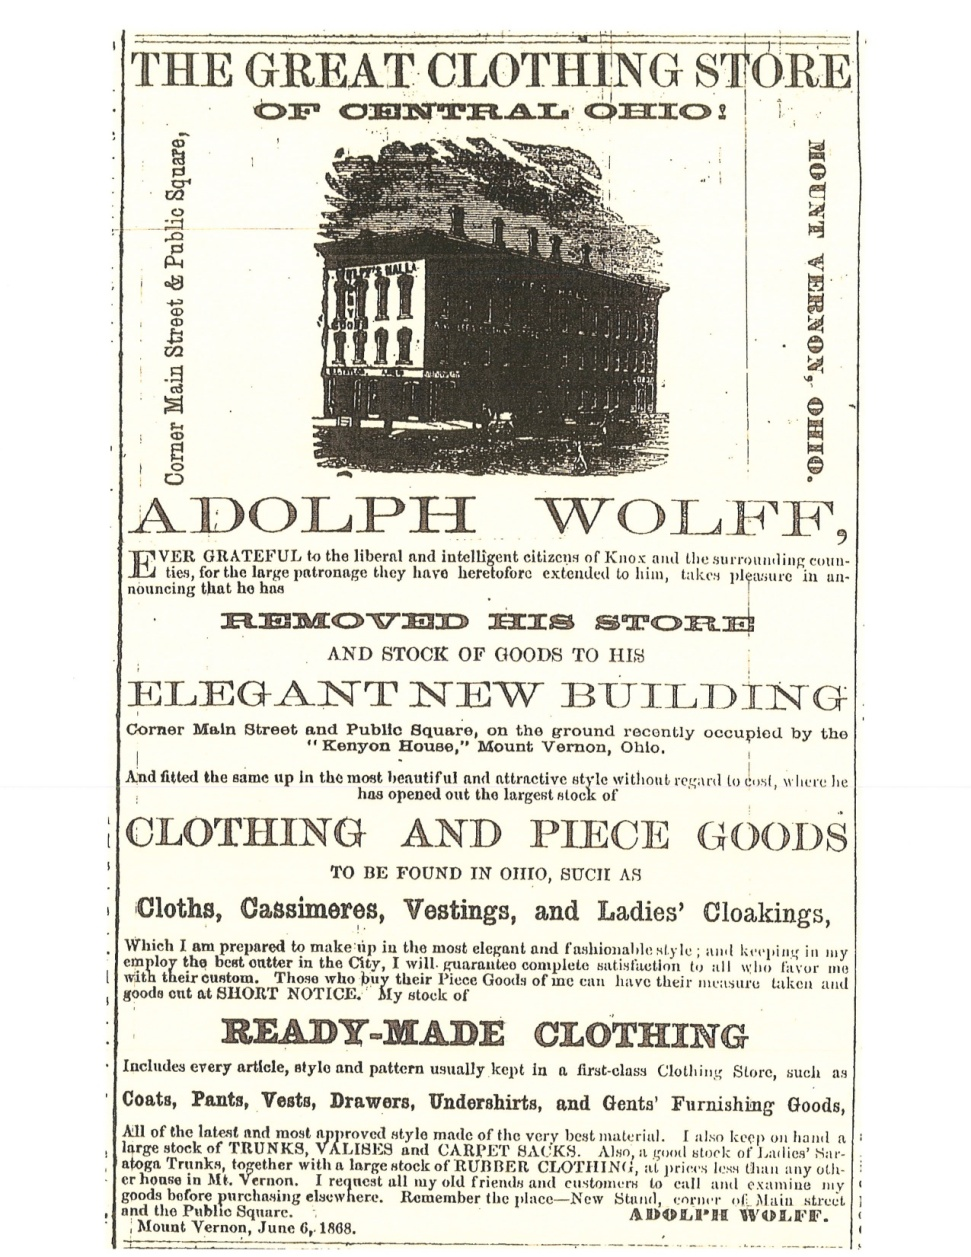 Typical advertisement for Adolph Wolff's store, Mount Vernon Democratic Banner.